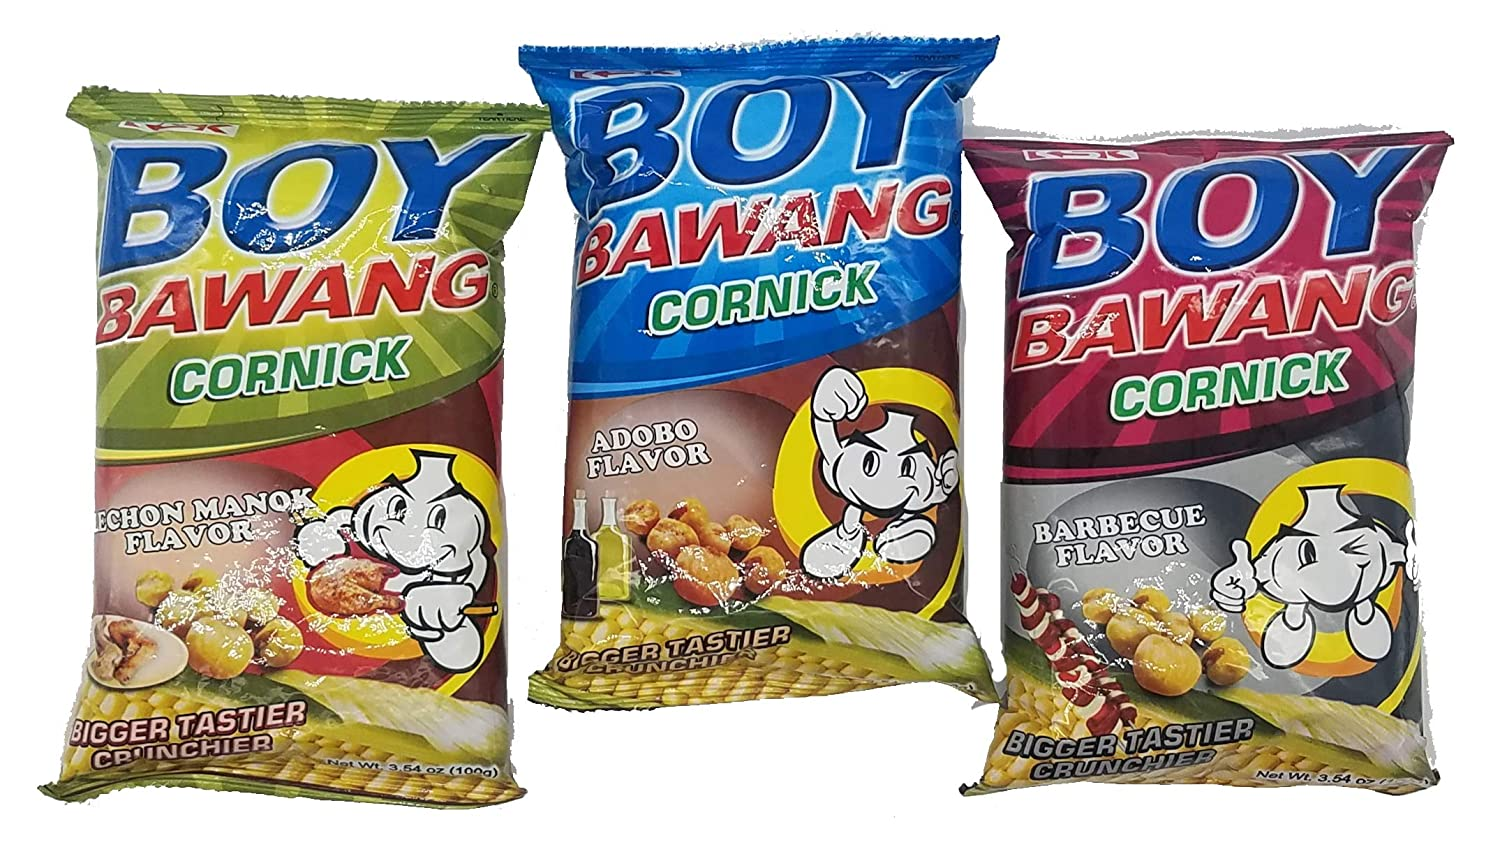 Boy Bawang Cornick Filipino Snacks Variety Pack Adobo, BBQ and Lechon Manok Flavor, 3.54 ounce, 1 Each Flavor